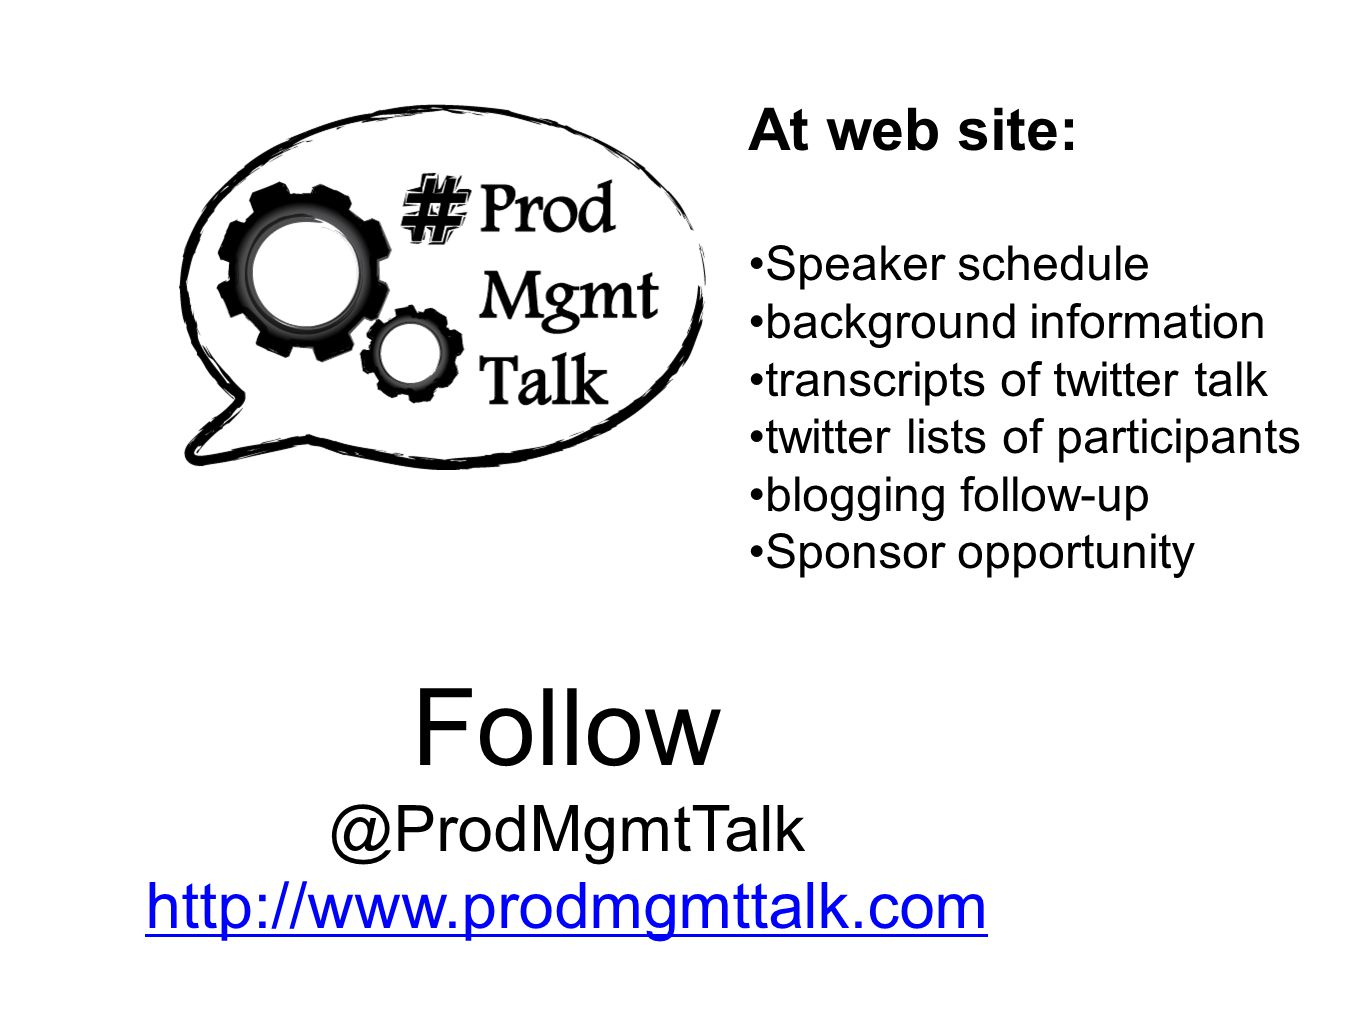 Follow @ProdMgmtTalk http://www.prodmgmttalk.com At web site: Speaker schedule background information transcripts of twitter talk twitter lists of participants blogging follow-up Sponsor opportunity